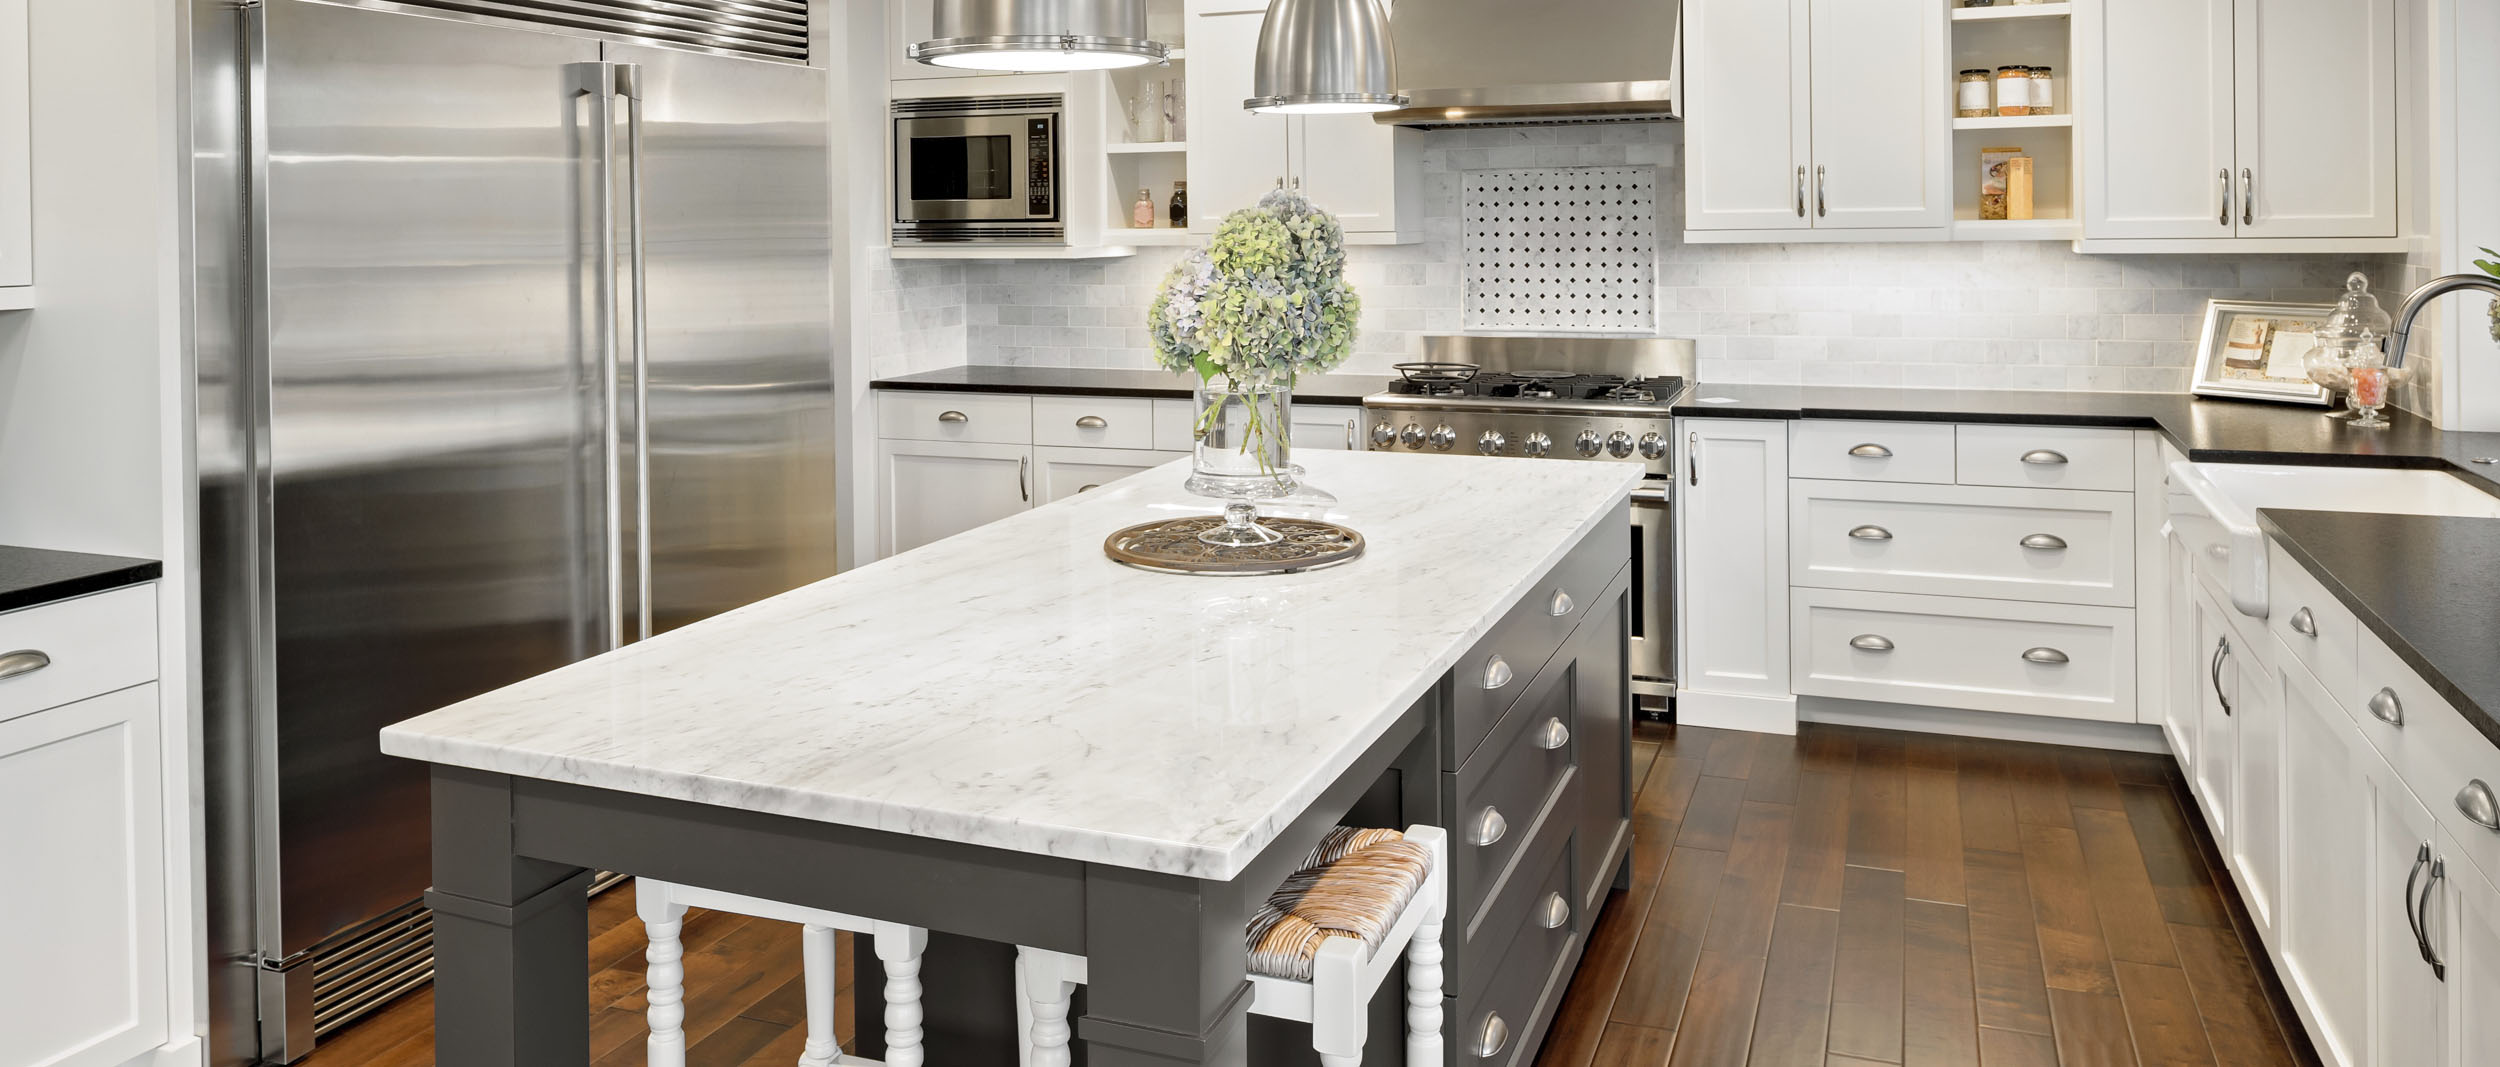 How To Remodel Your Kitchen Previous Next